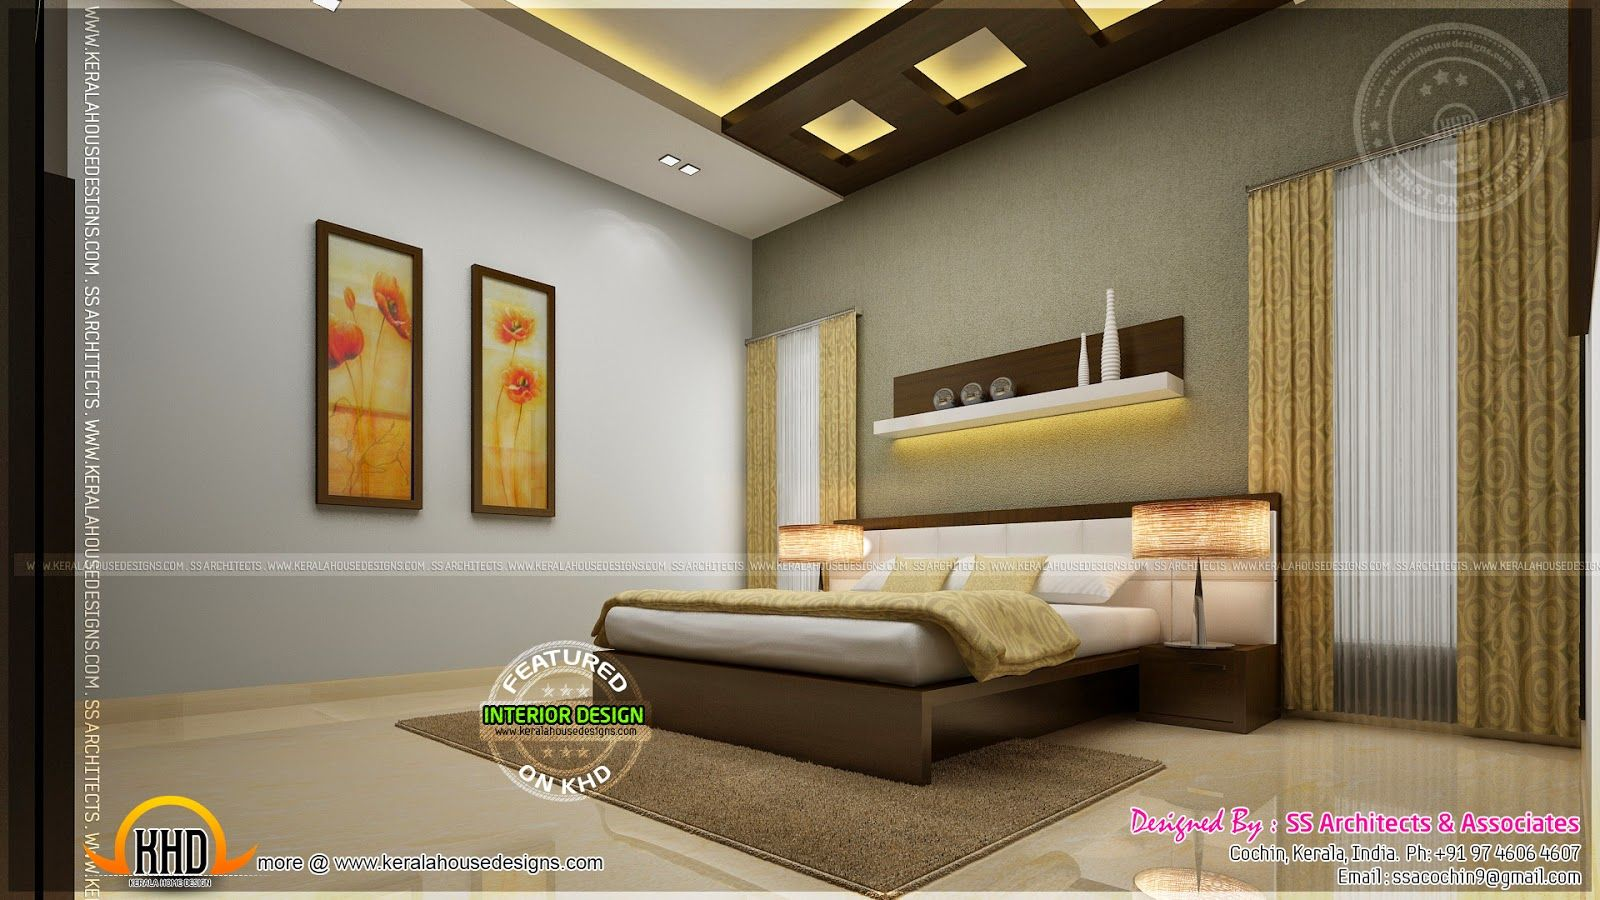 Indian master bedroom interior design google search for Indian interior design